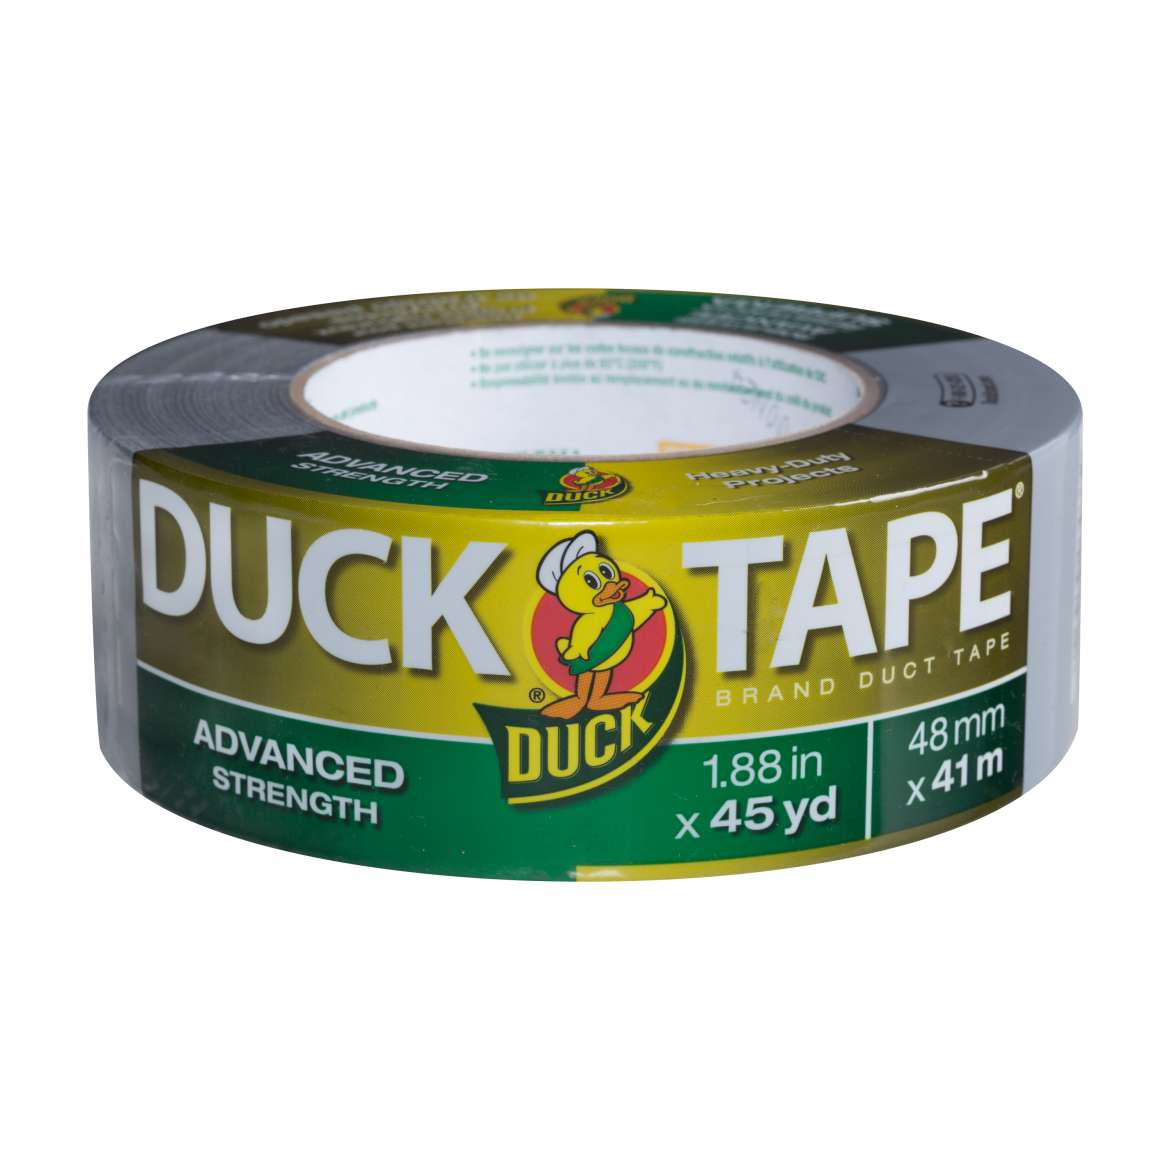 Advanced Strength Duck Tape® Brand Duct Tape - Silver, 1.88 in. x 45 yd. Image